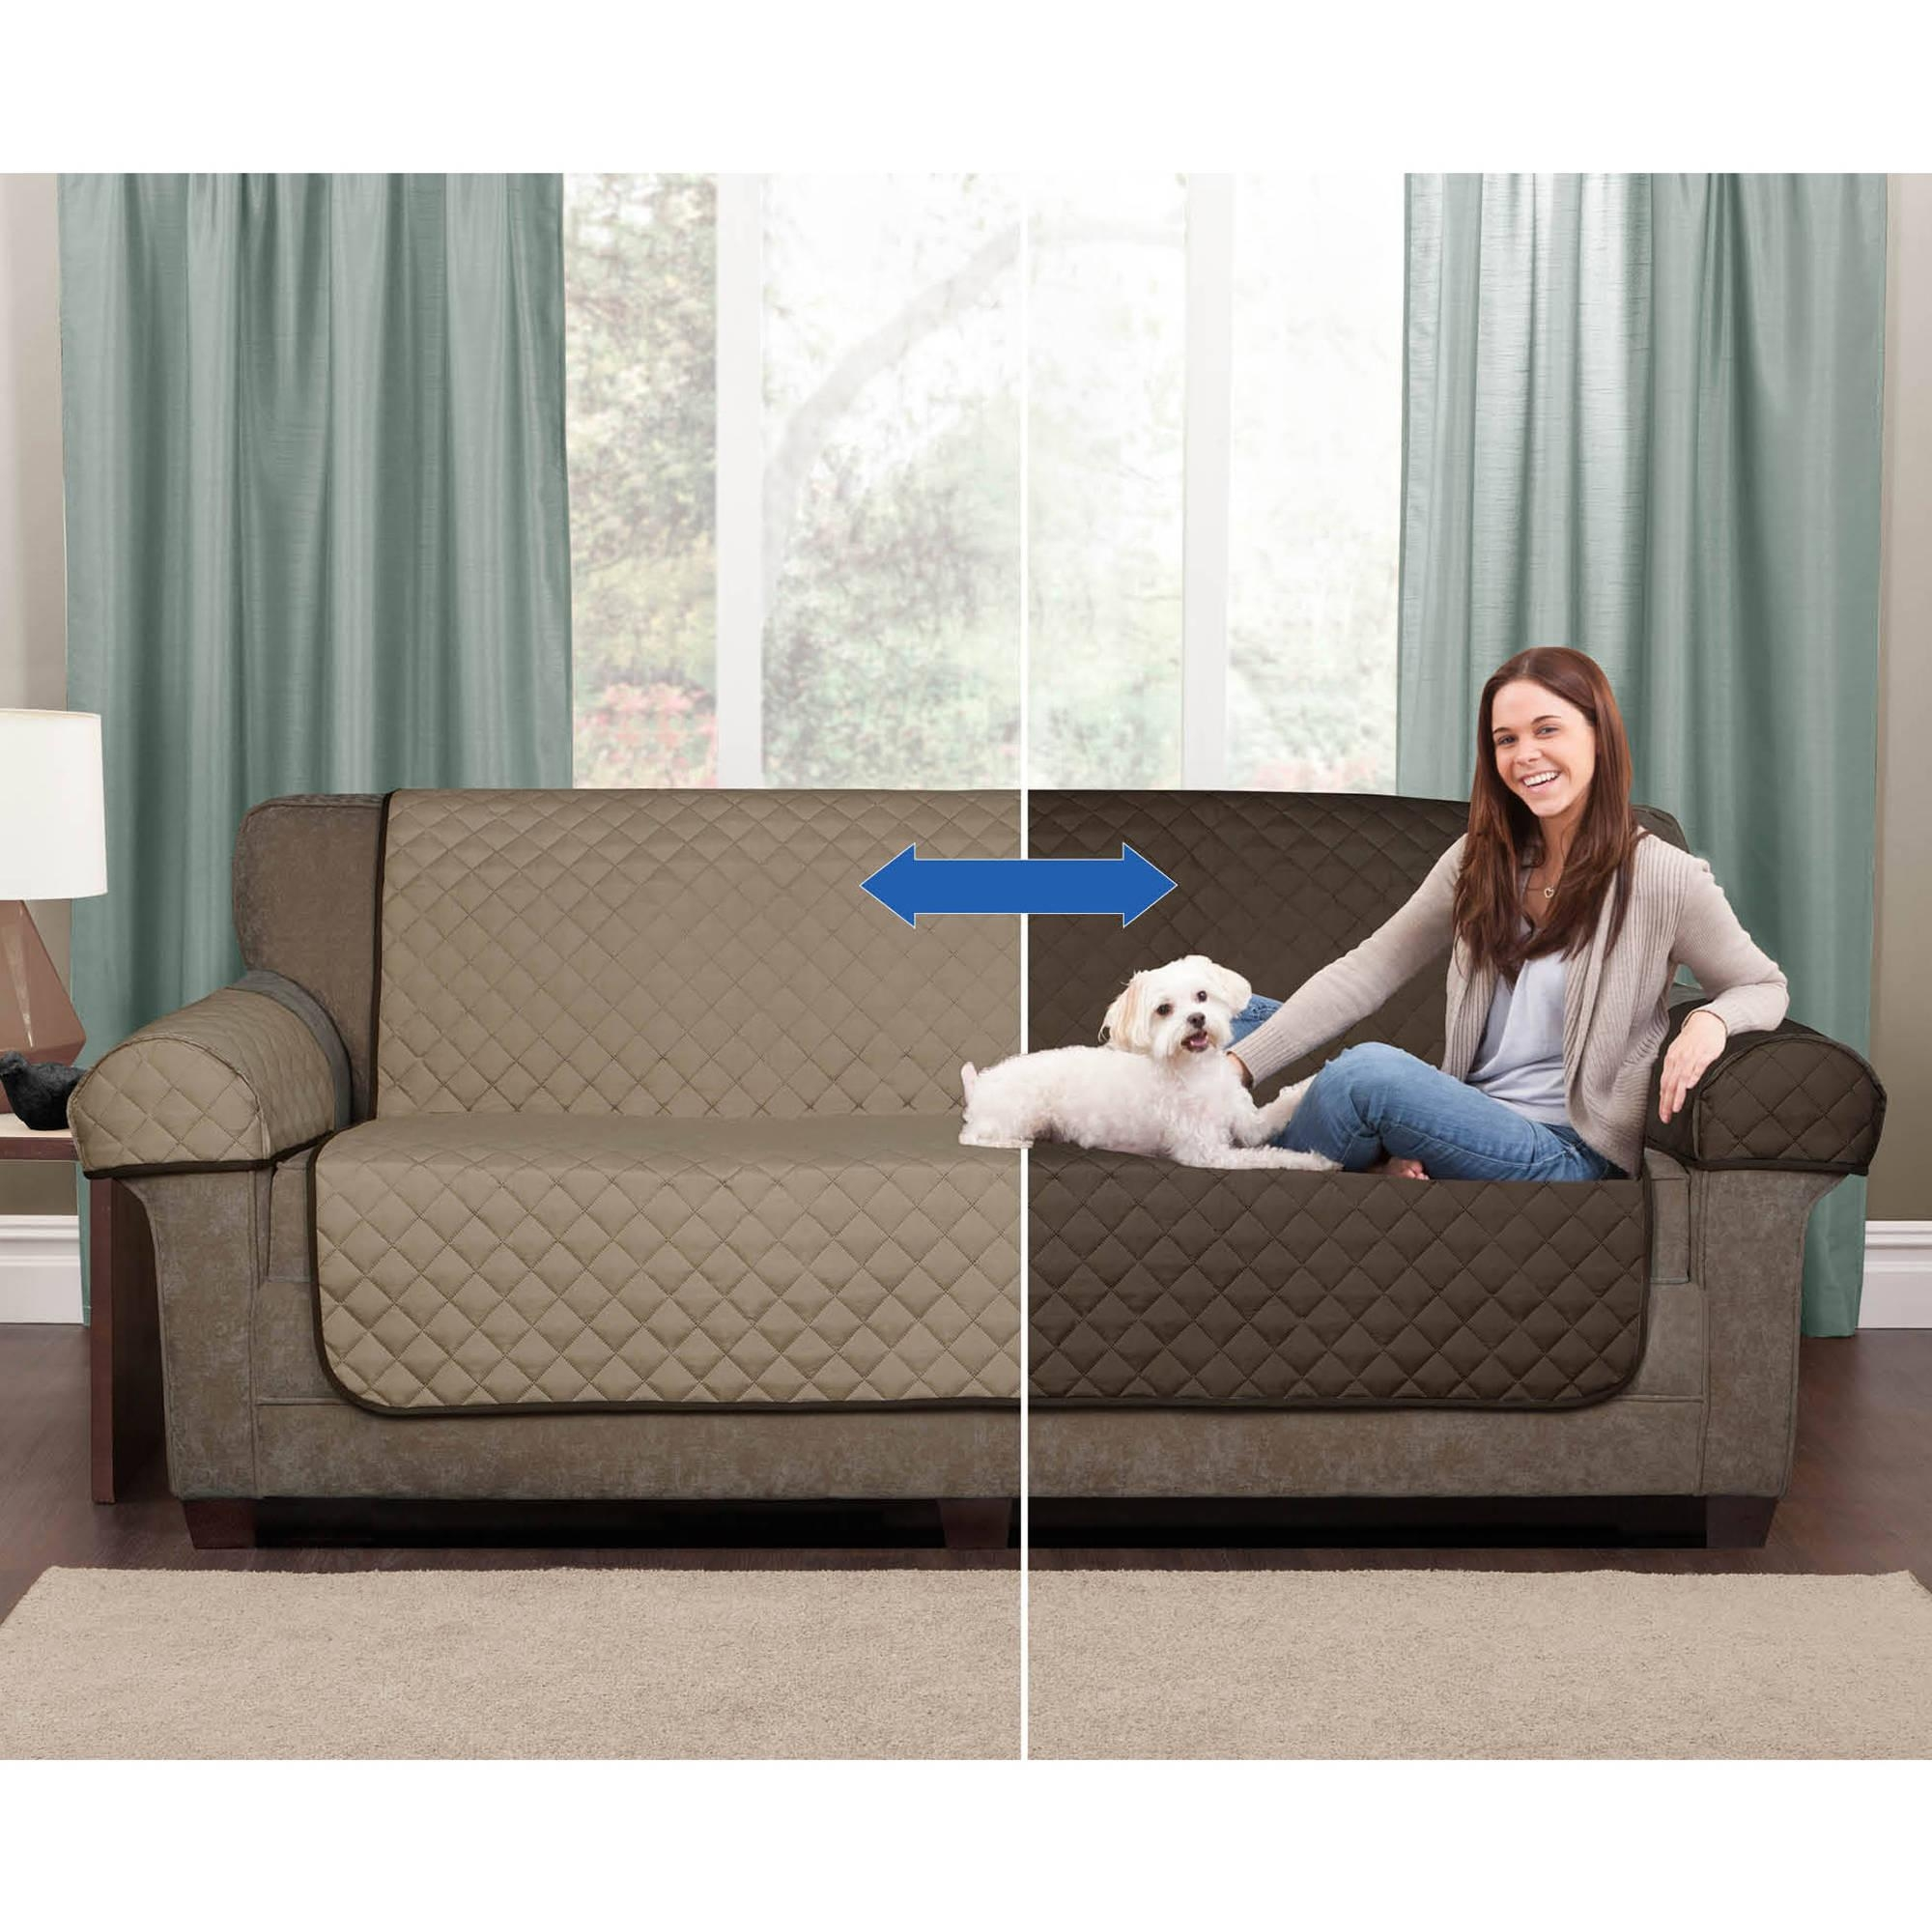 Mainstays 1 Piece Stretch Fabric Sofa Slipcover – Walmart Pertaining To Walmart Slipcovers For Sofas (Image 10 of 20)